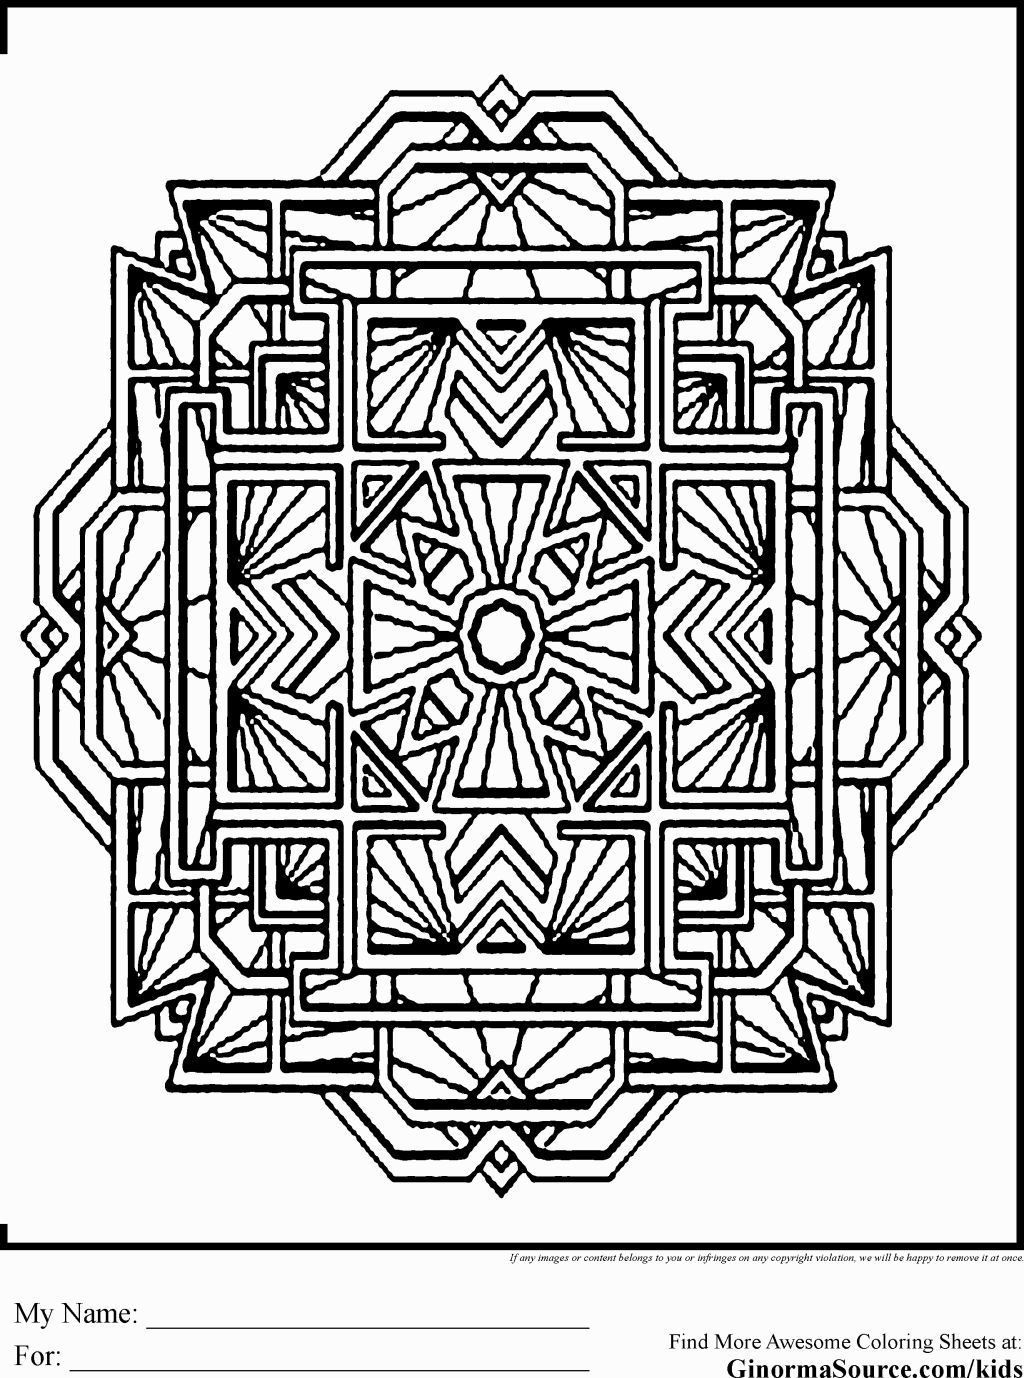 wwwfree coloring pagescom advanced coloring pages free coloring home coloring wwwfree pagescom